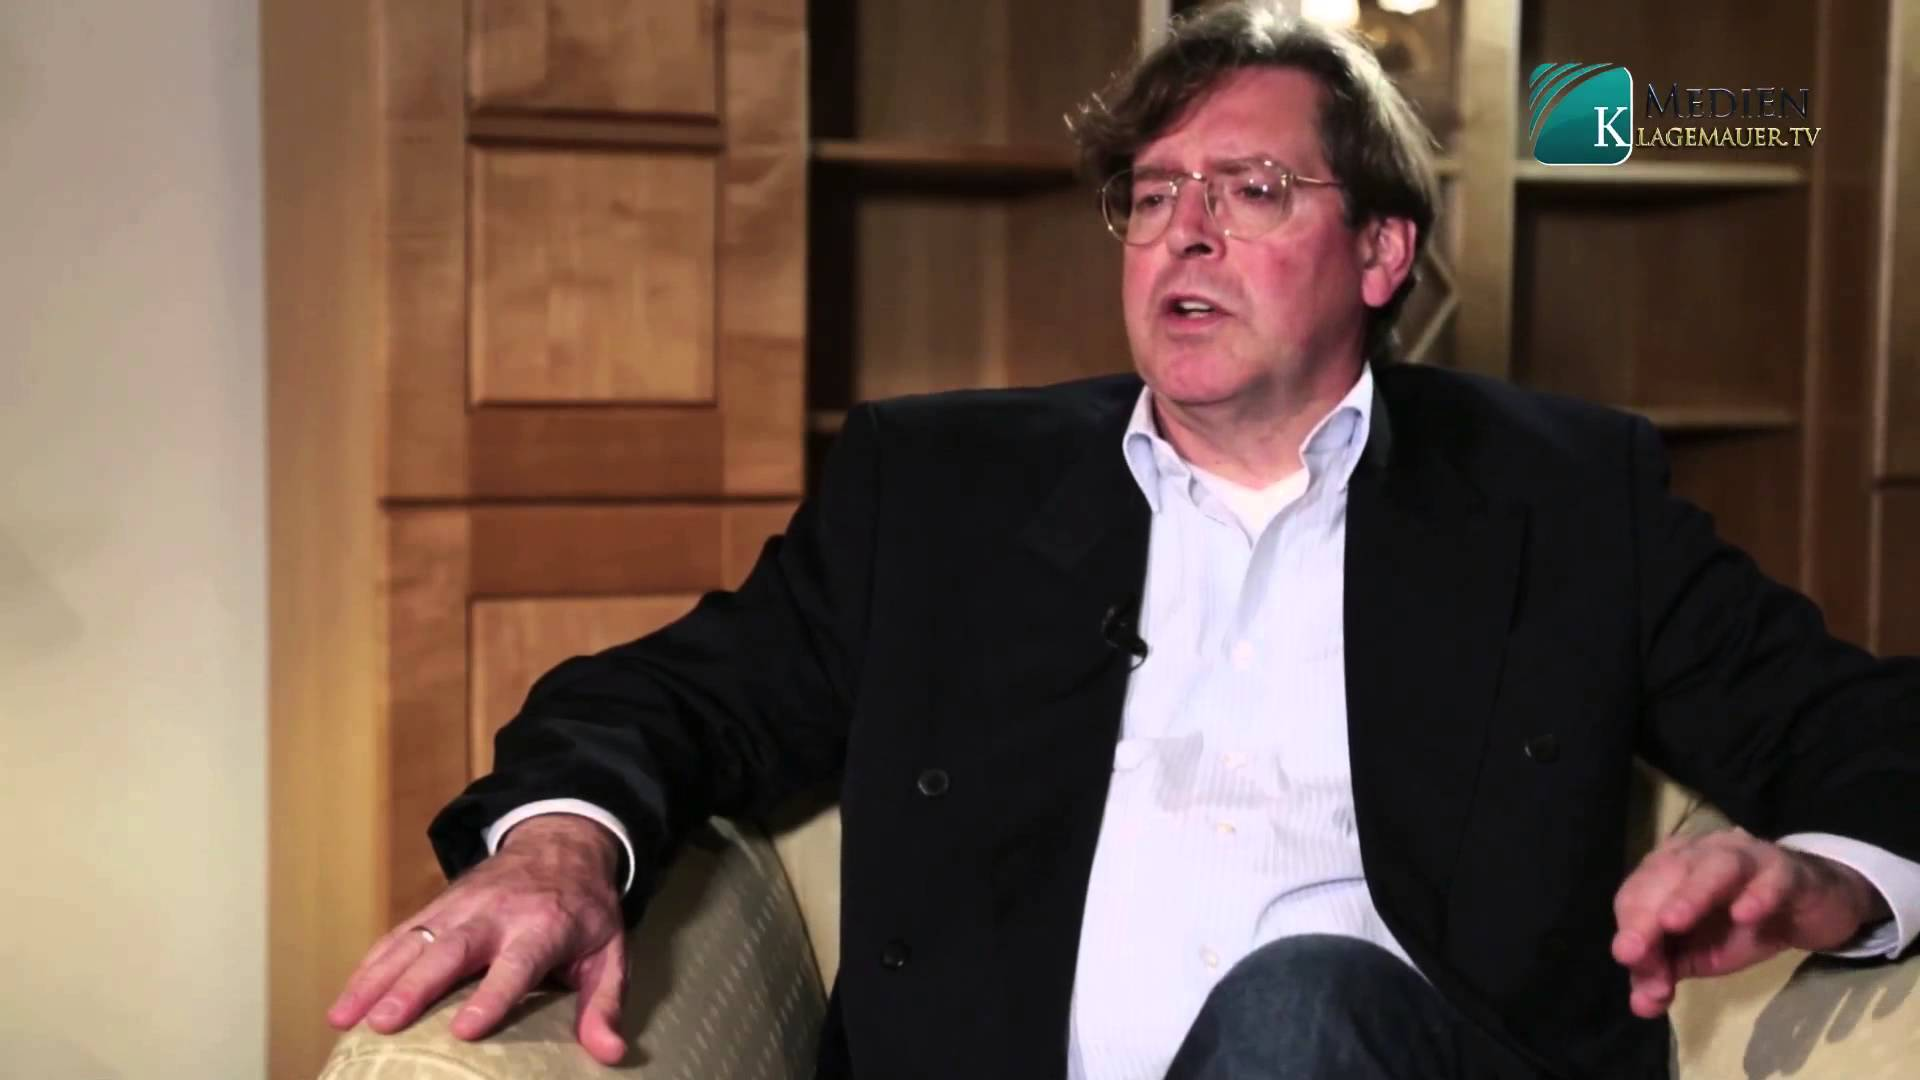 Dr. Udo Ulfkotte – A German Well Known Journalist and Author on RT